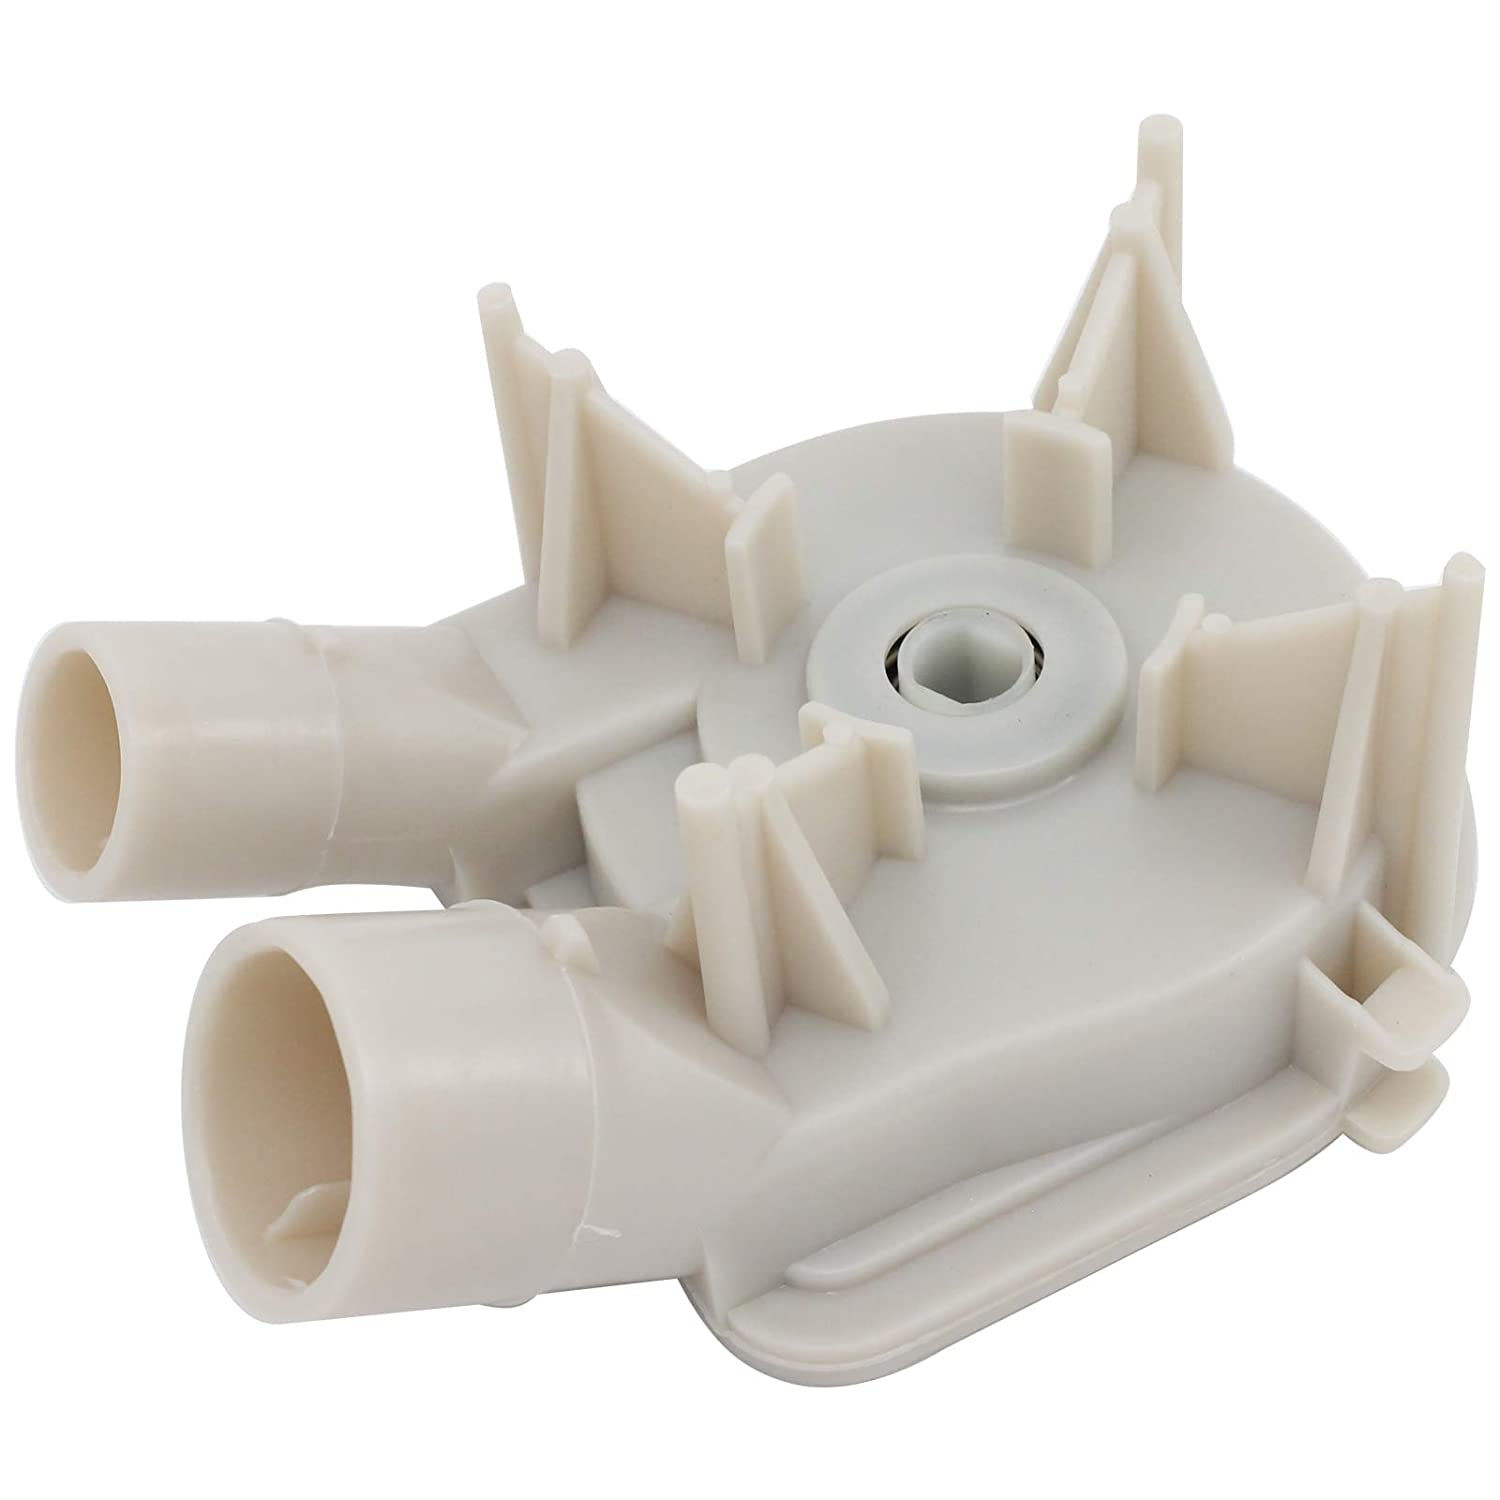 UpStart Components Brand 3363394 Washing Machine Pump Replacement for Kenmore//Sears 11082873120 Washer Compatible with WP3363394 Washer Water Pump Assembly